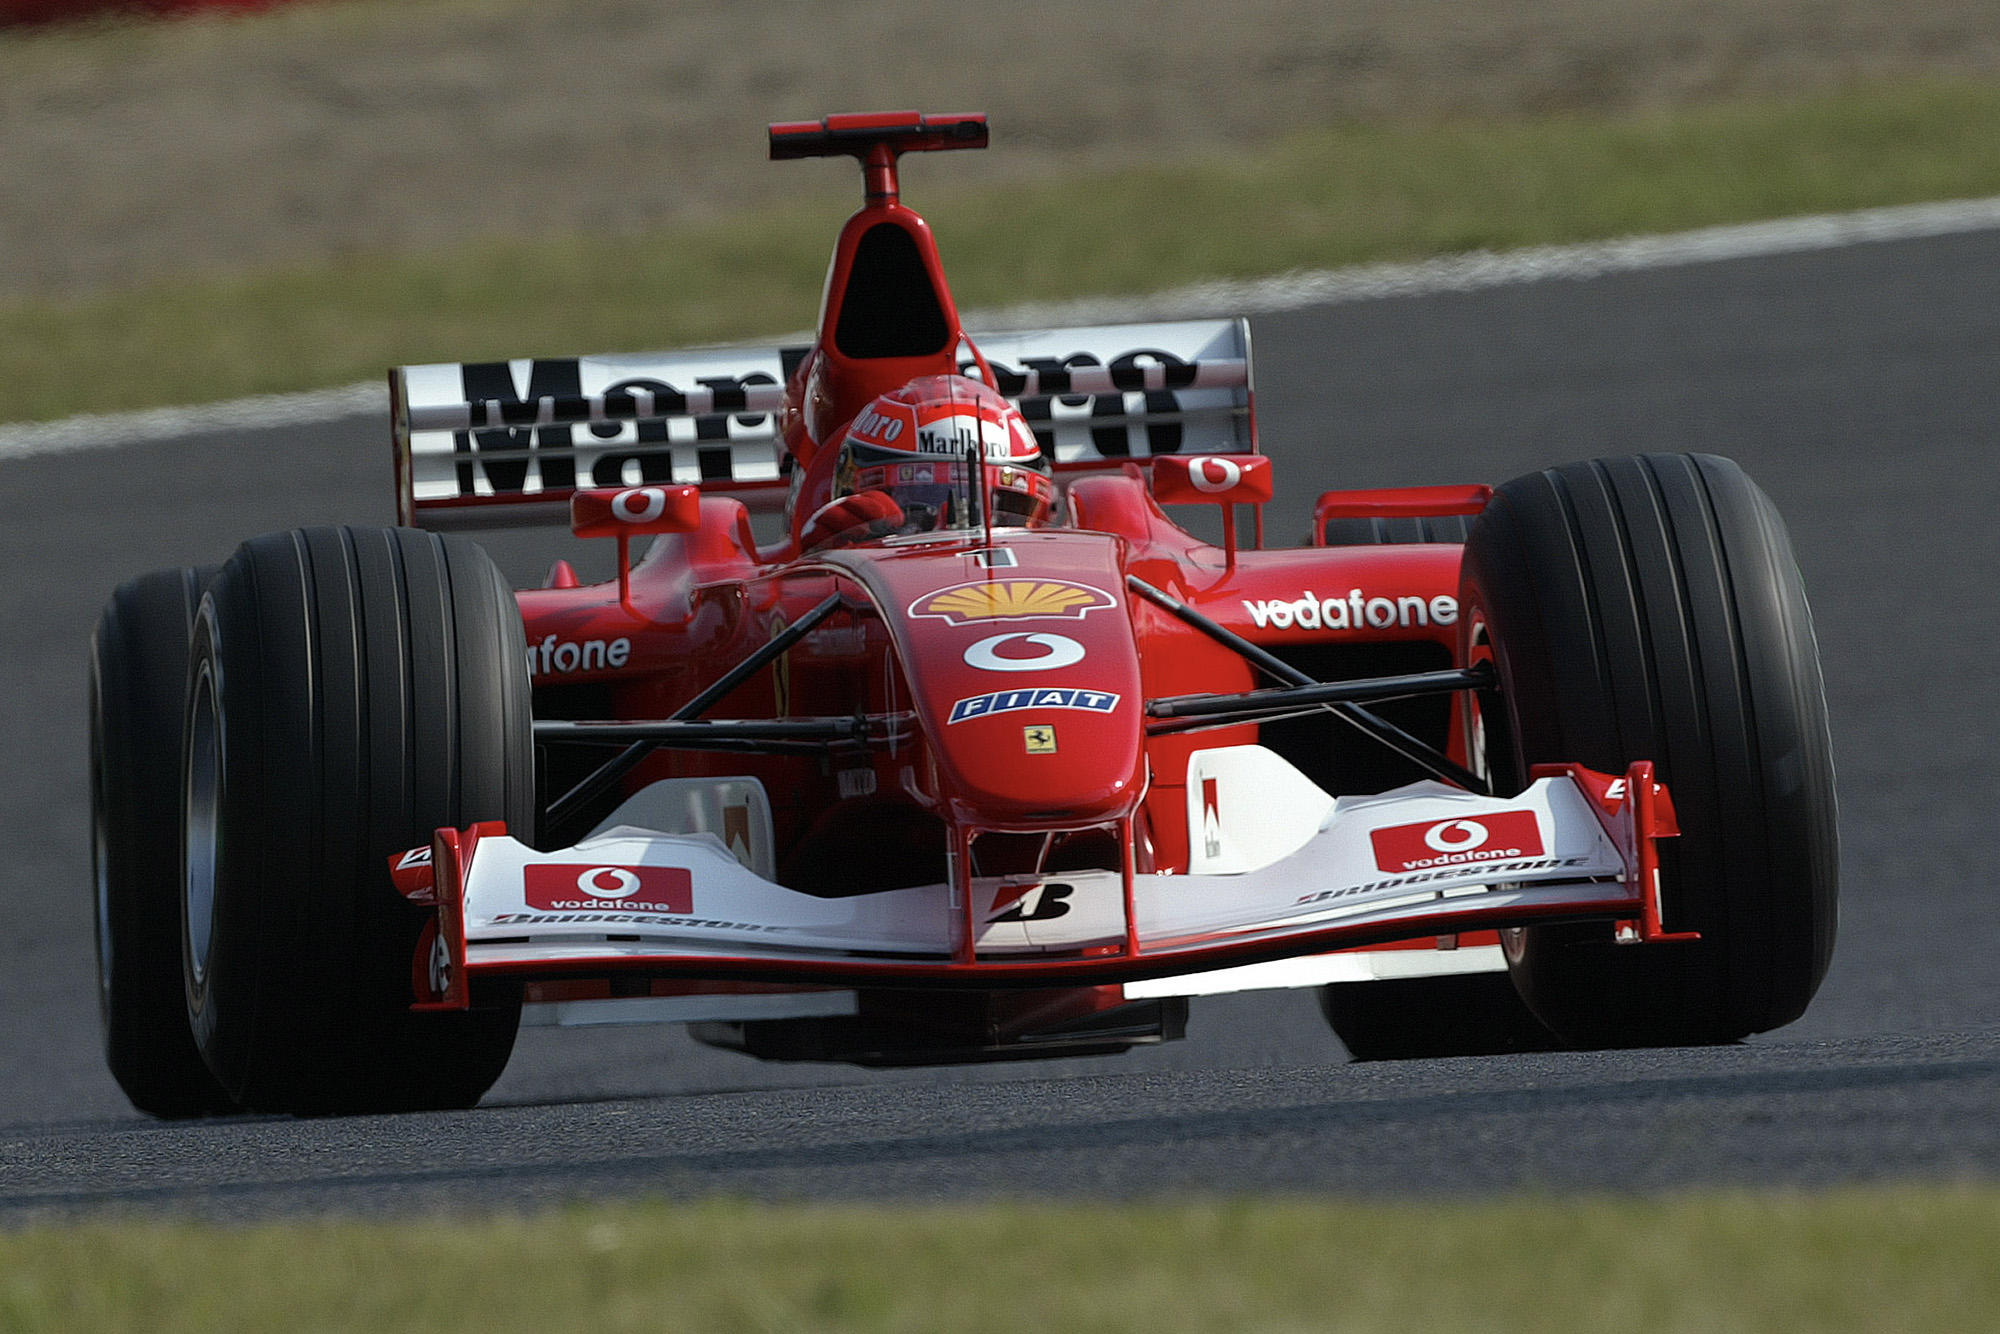 Michael Schumacher in the Ferrari F2002 during the 2002 Japanese Grand Prix